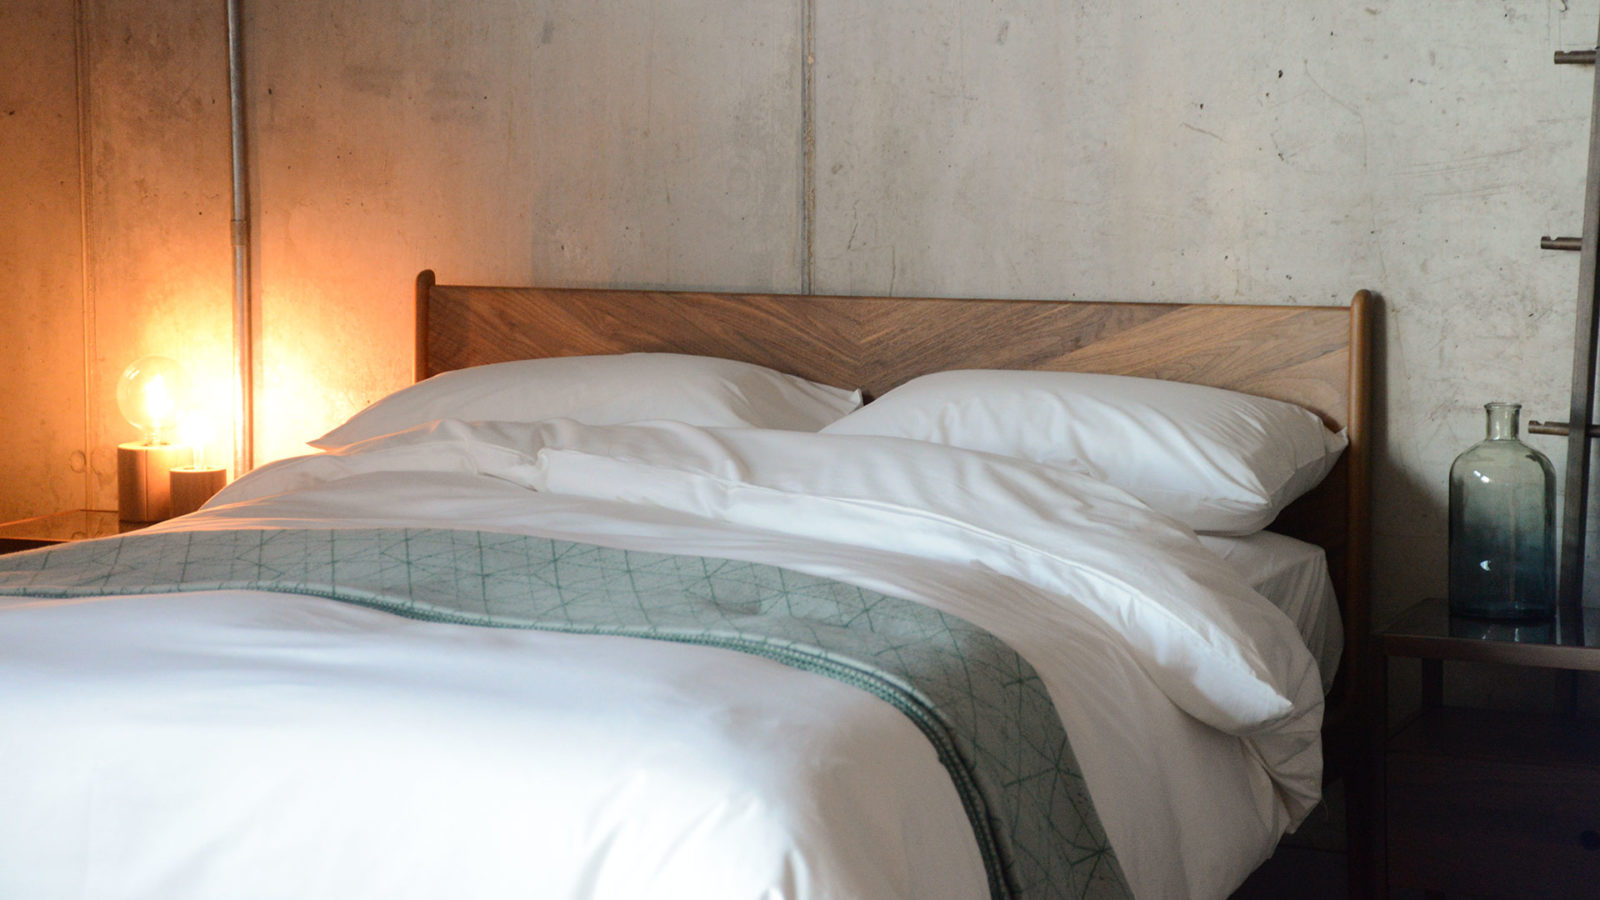 ivory organic cotton bedding shown on Hoxton bed with hand made solid wood herringbone headboard.